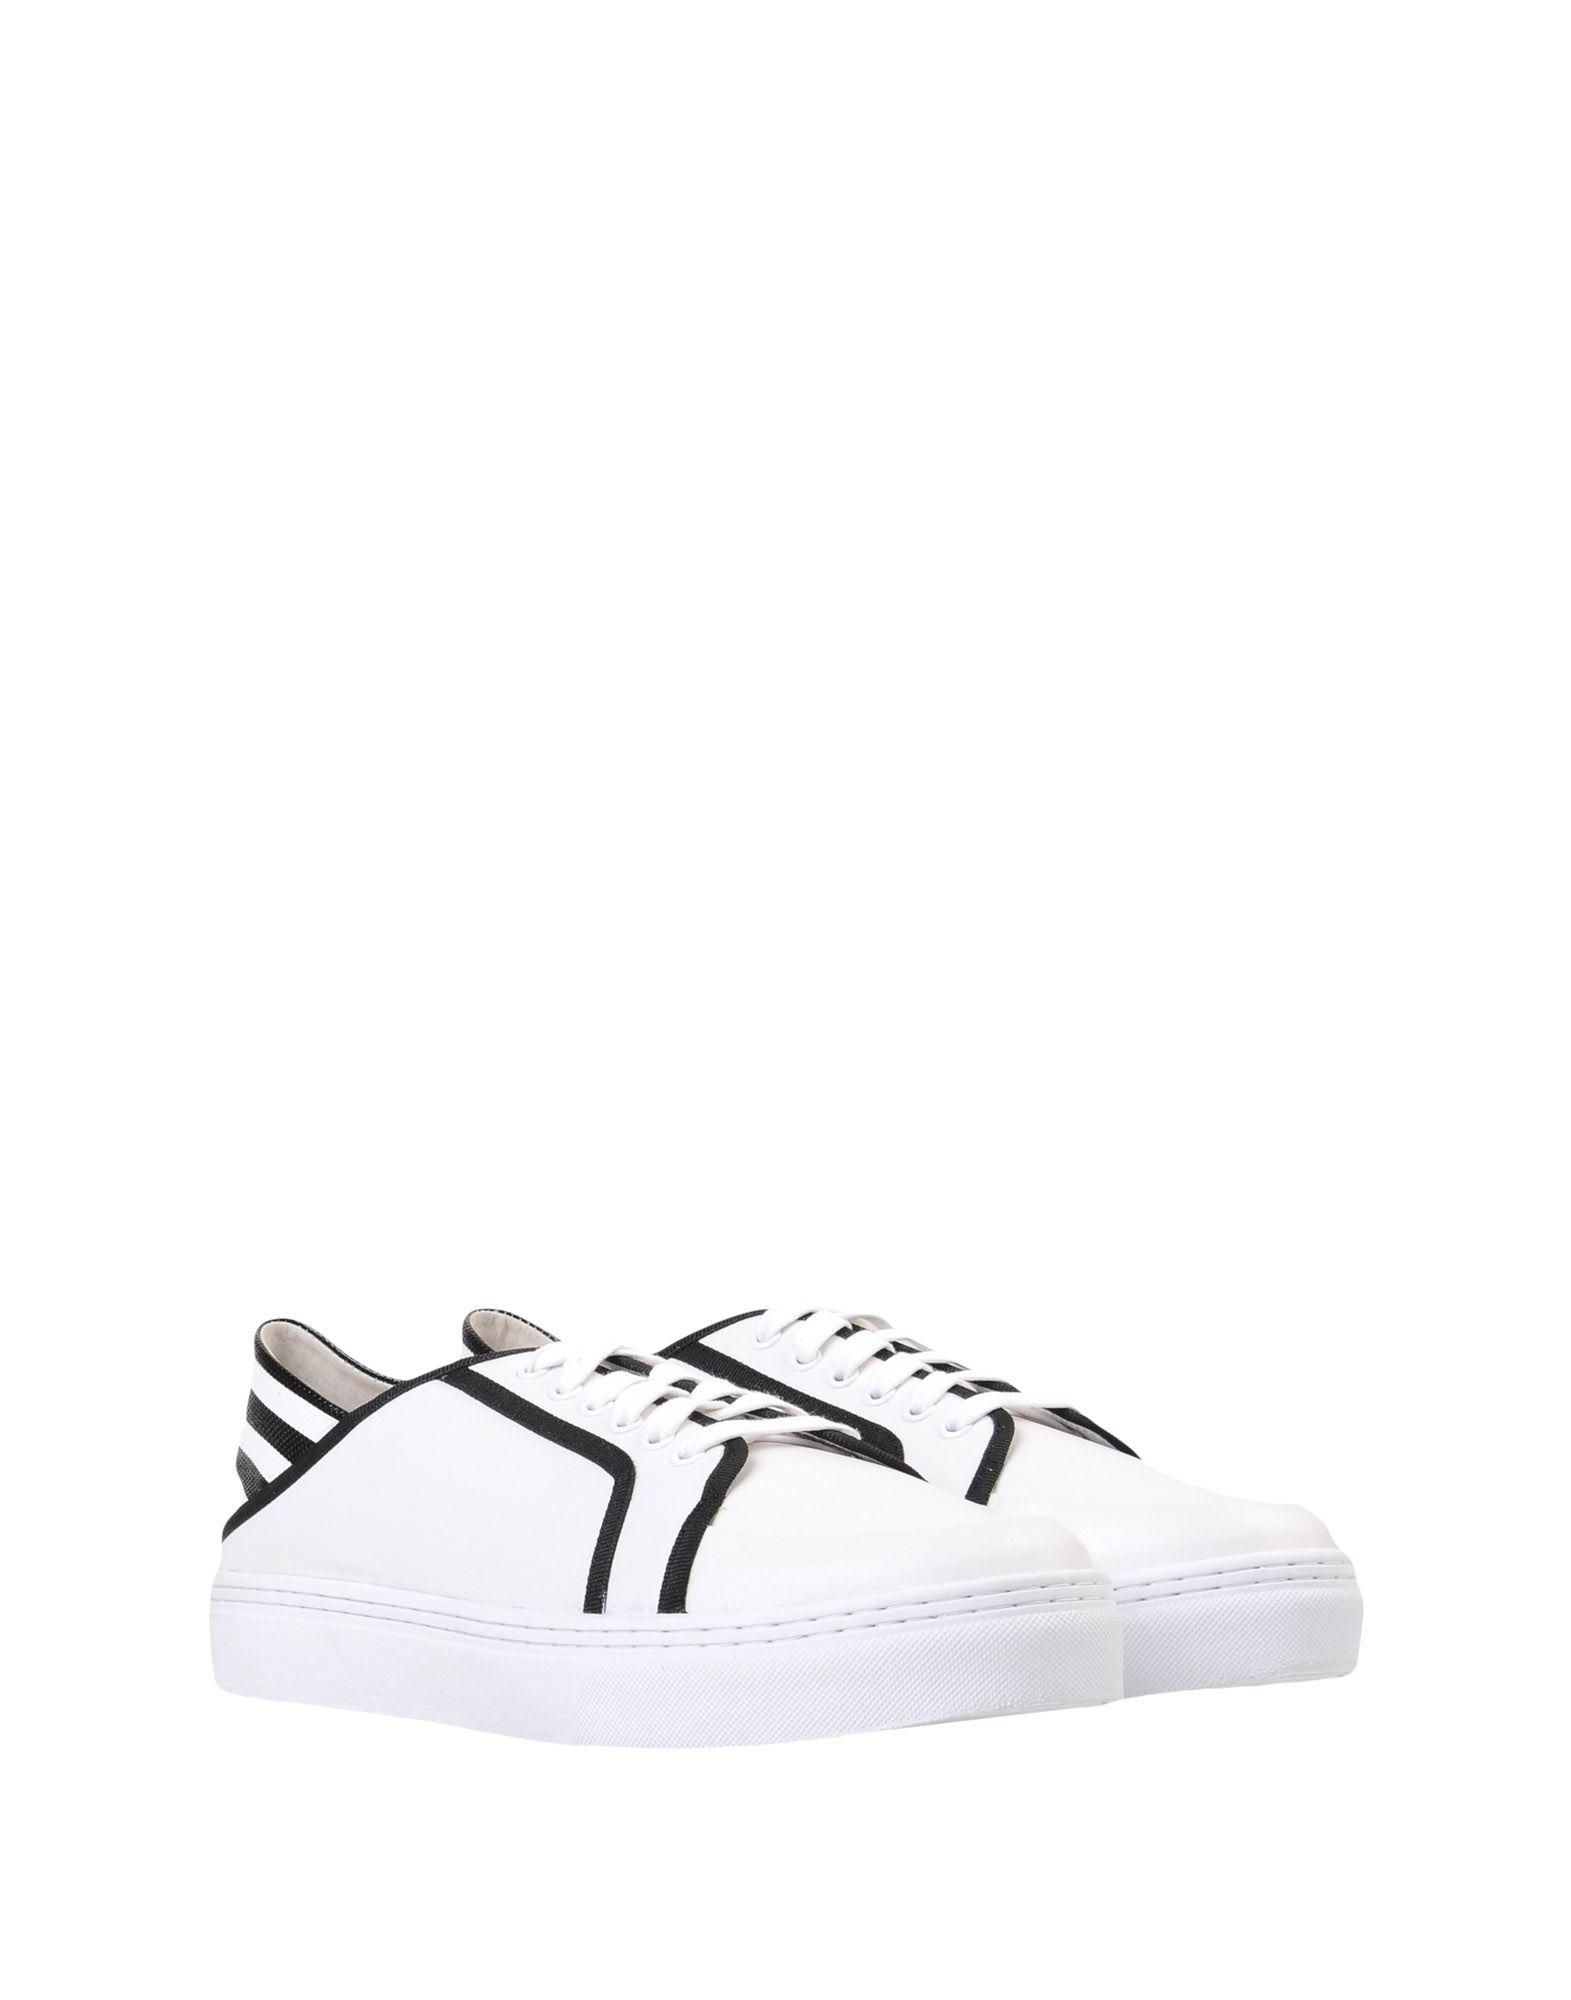 Senso Rubber Low-tops & Sneakers in White